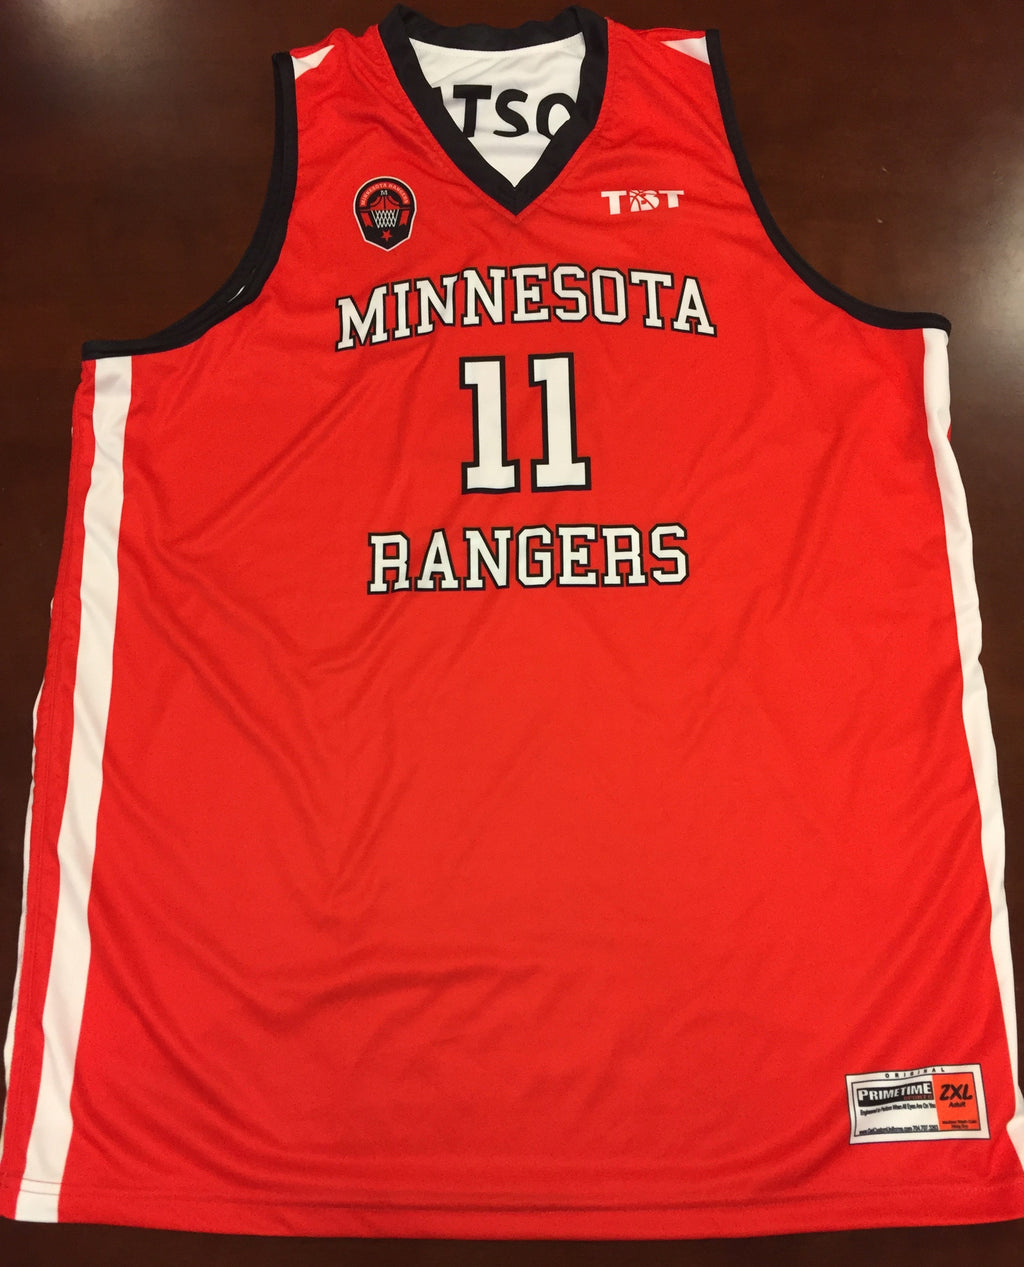 Minnesota Rangers - 2015 Official Team Uniform (Jersey & Shorts sold separately)